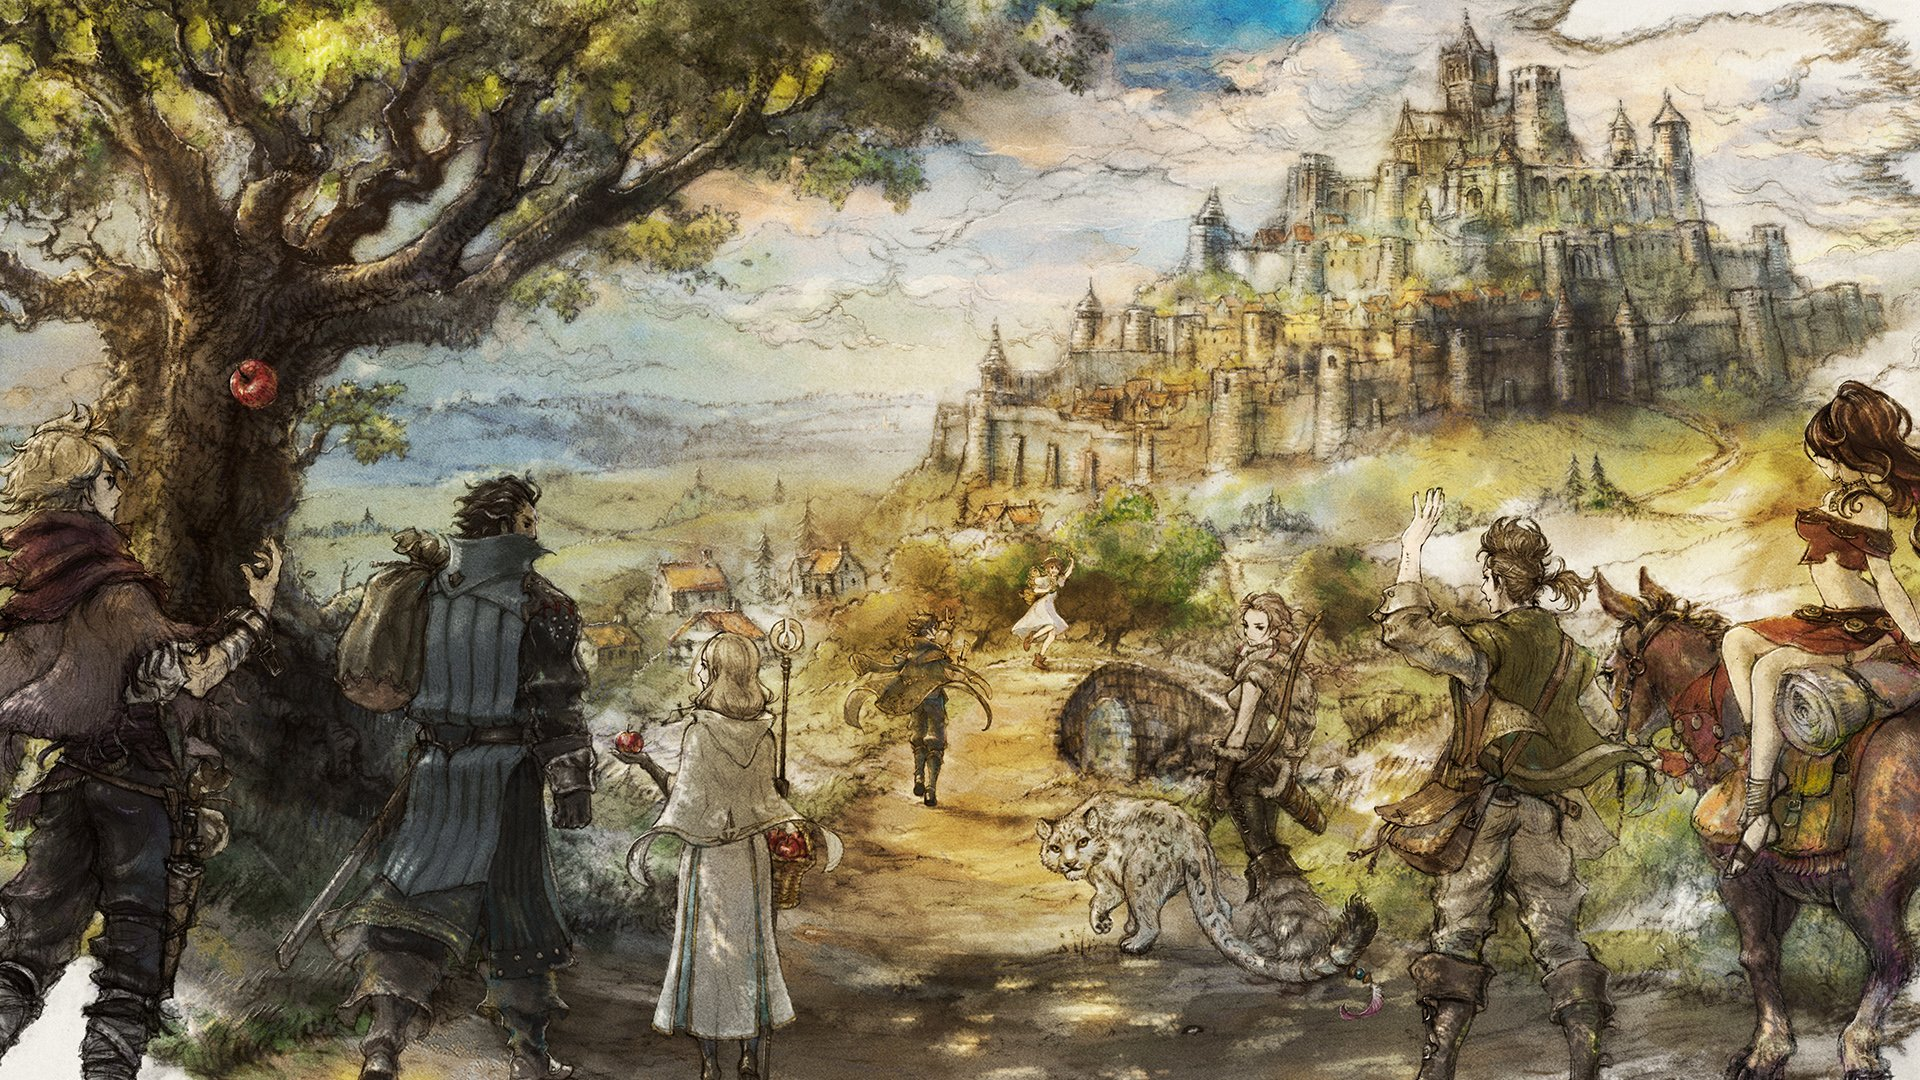 Octopath Traveler for Steam coming in June